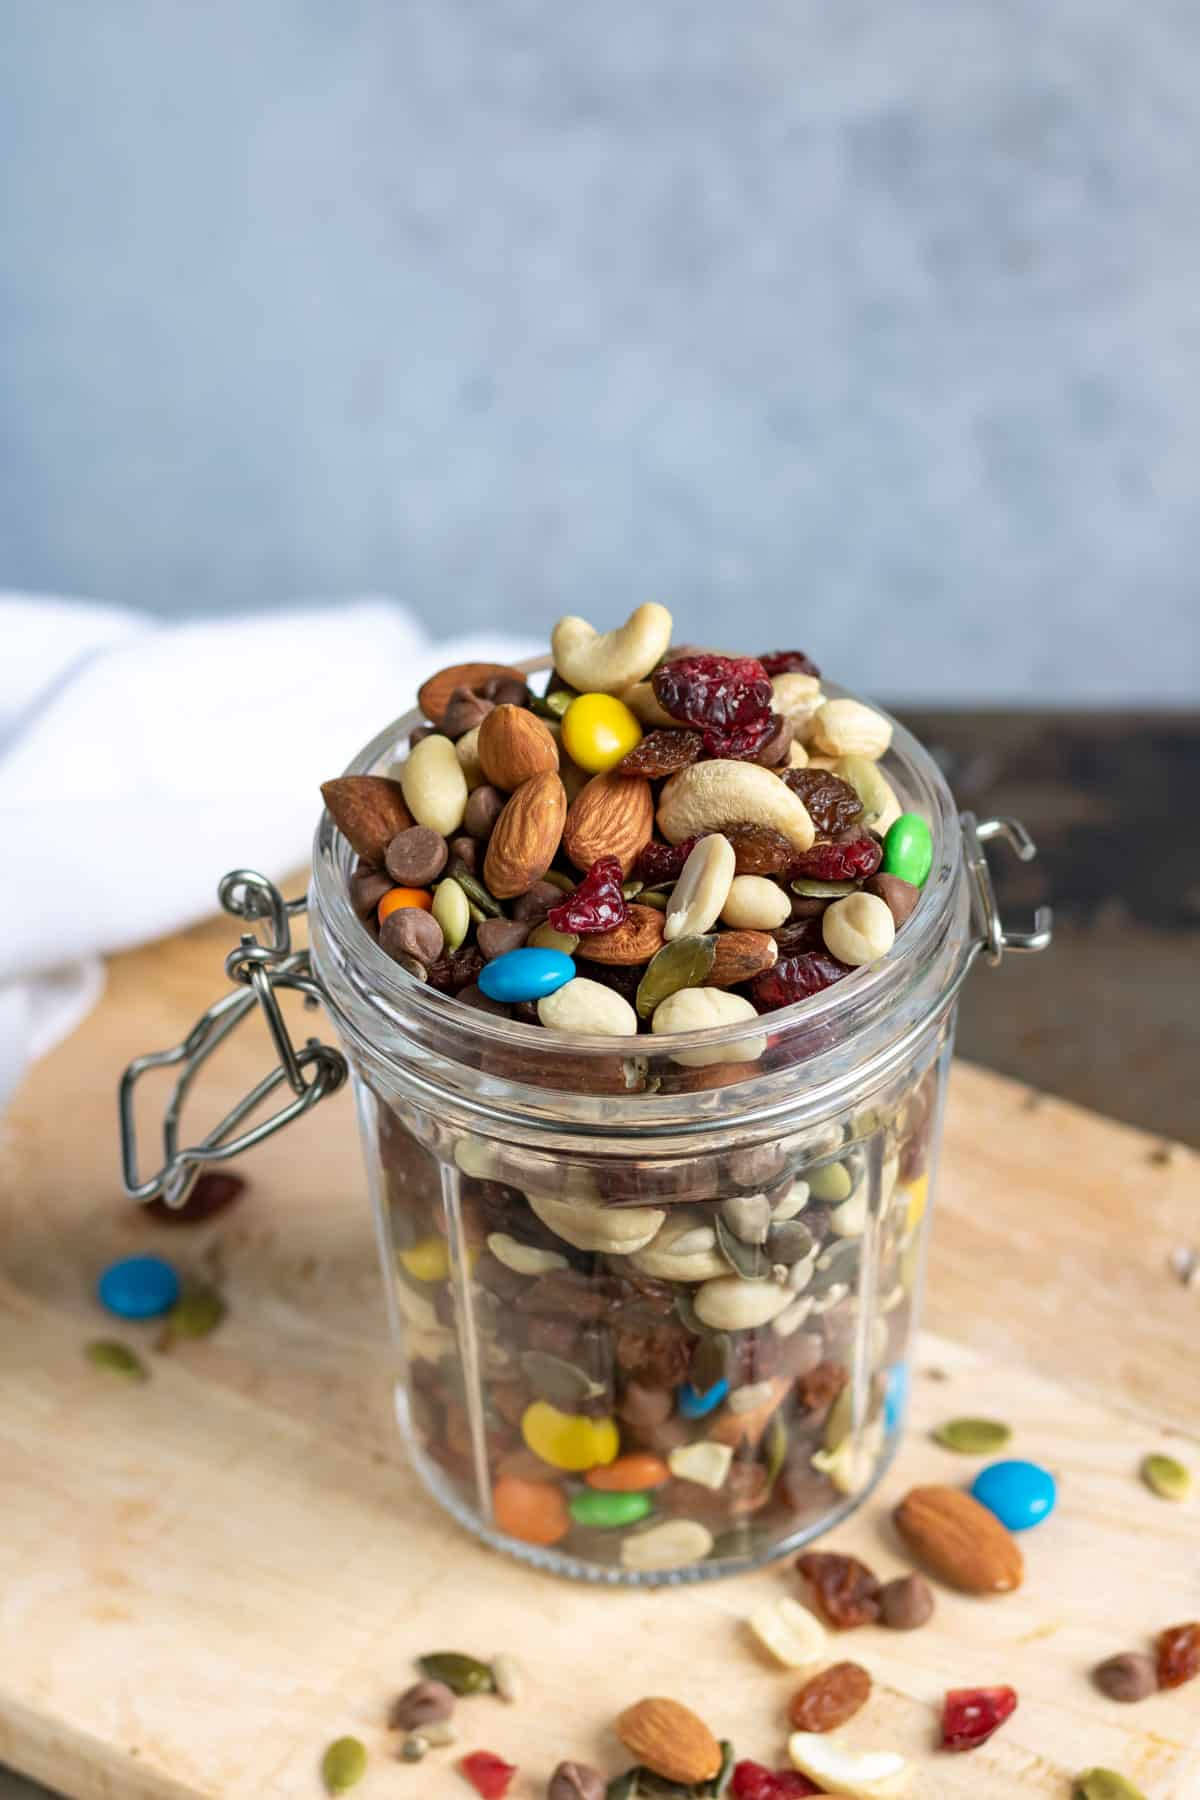 A jar of trail mix on a wooden board.